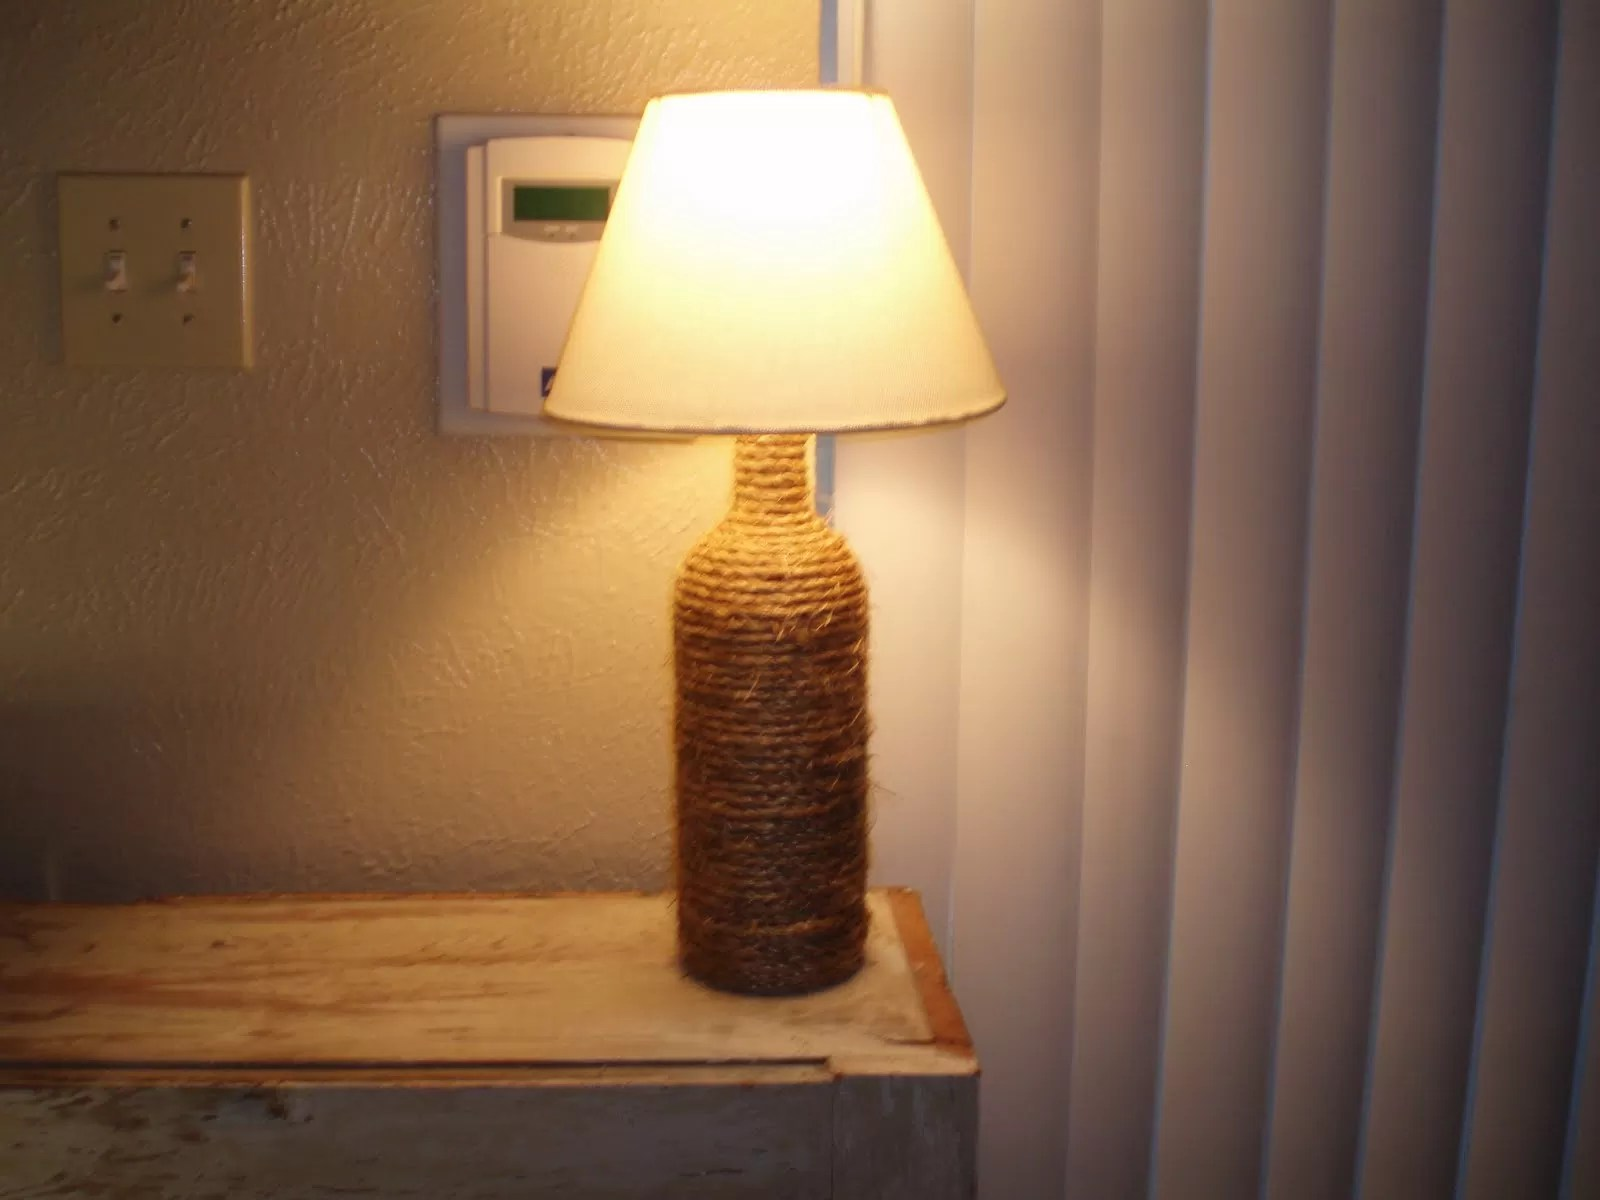 Lampe Diy 12 Ways To Make A Wine Bottle Lamp Guide Patterns